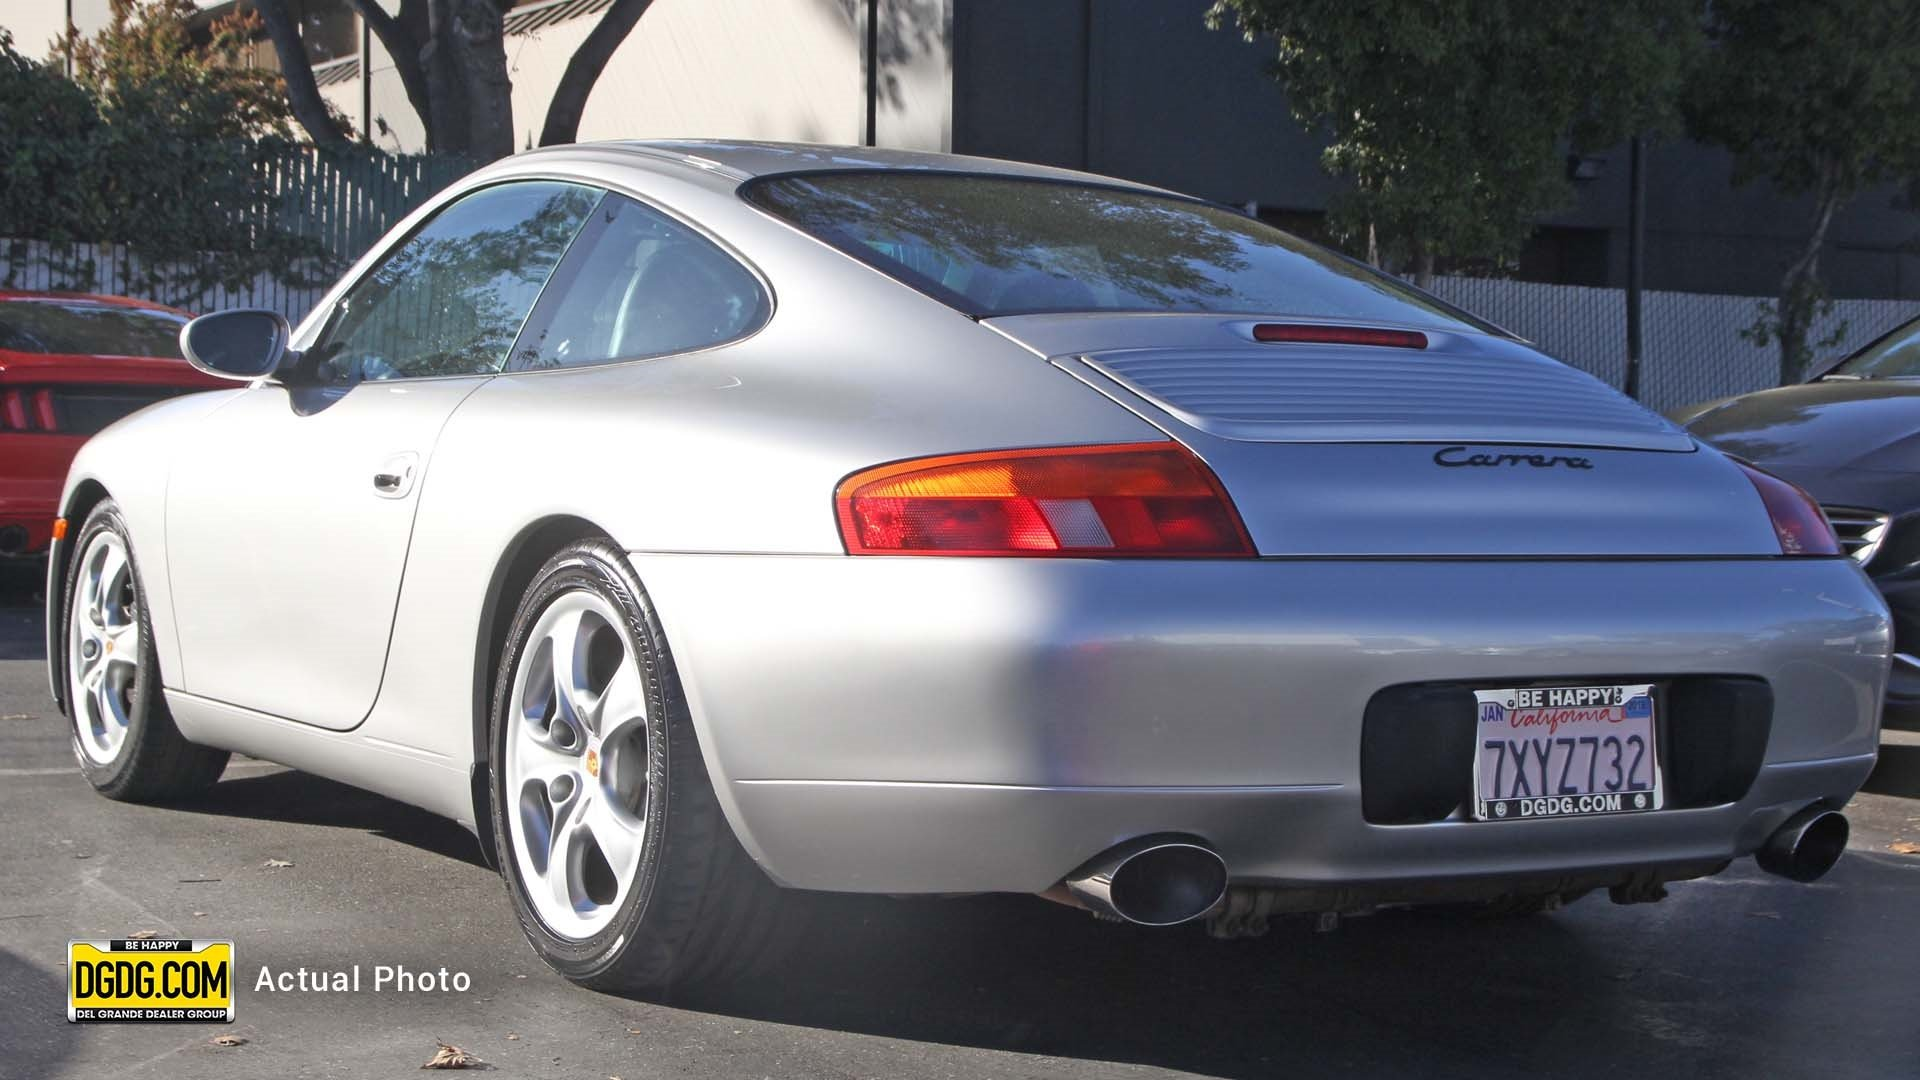 Pre Owned 1999 Porsche 911 Carrera Carrera 2dr Car in San Jose